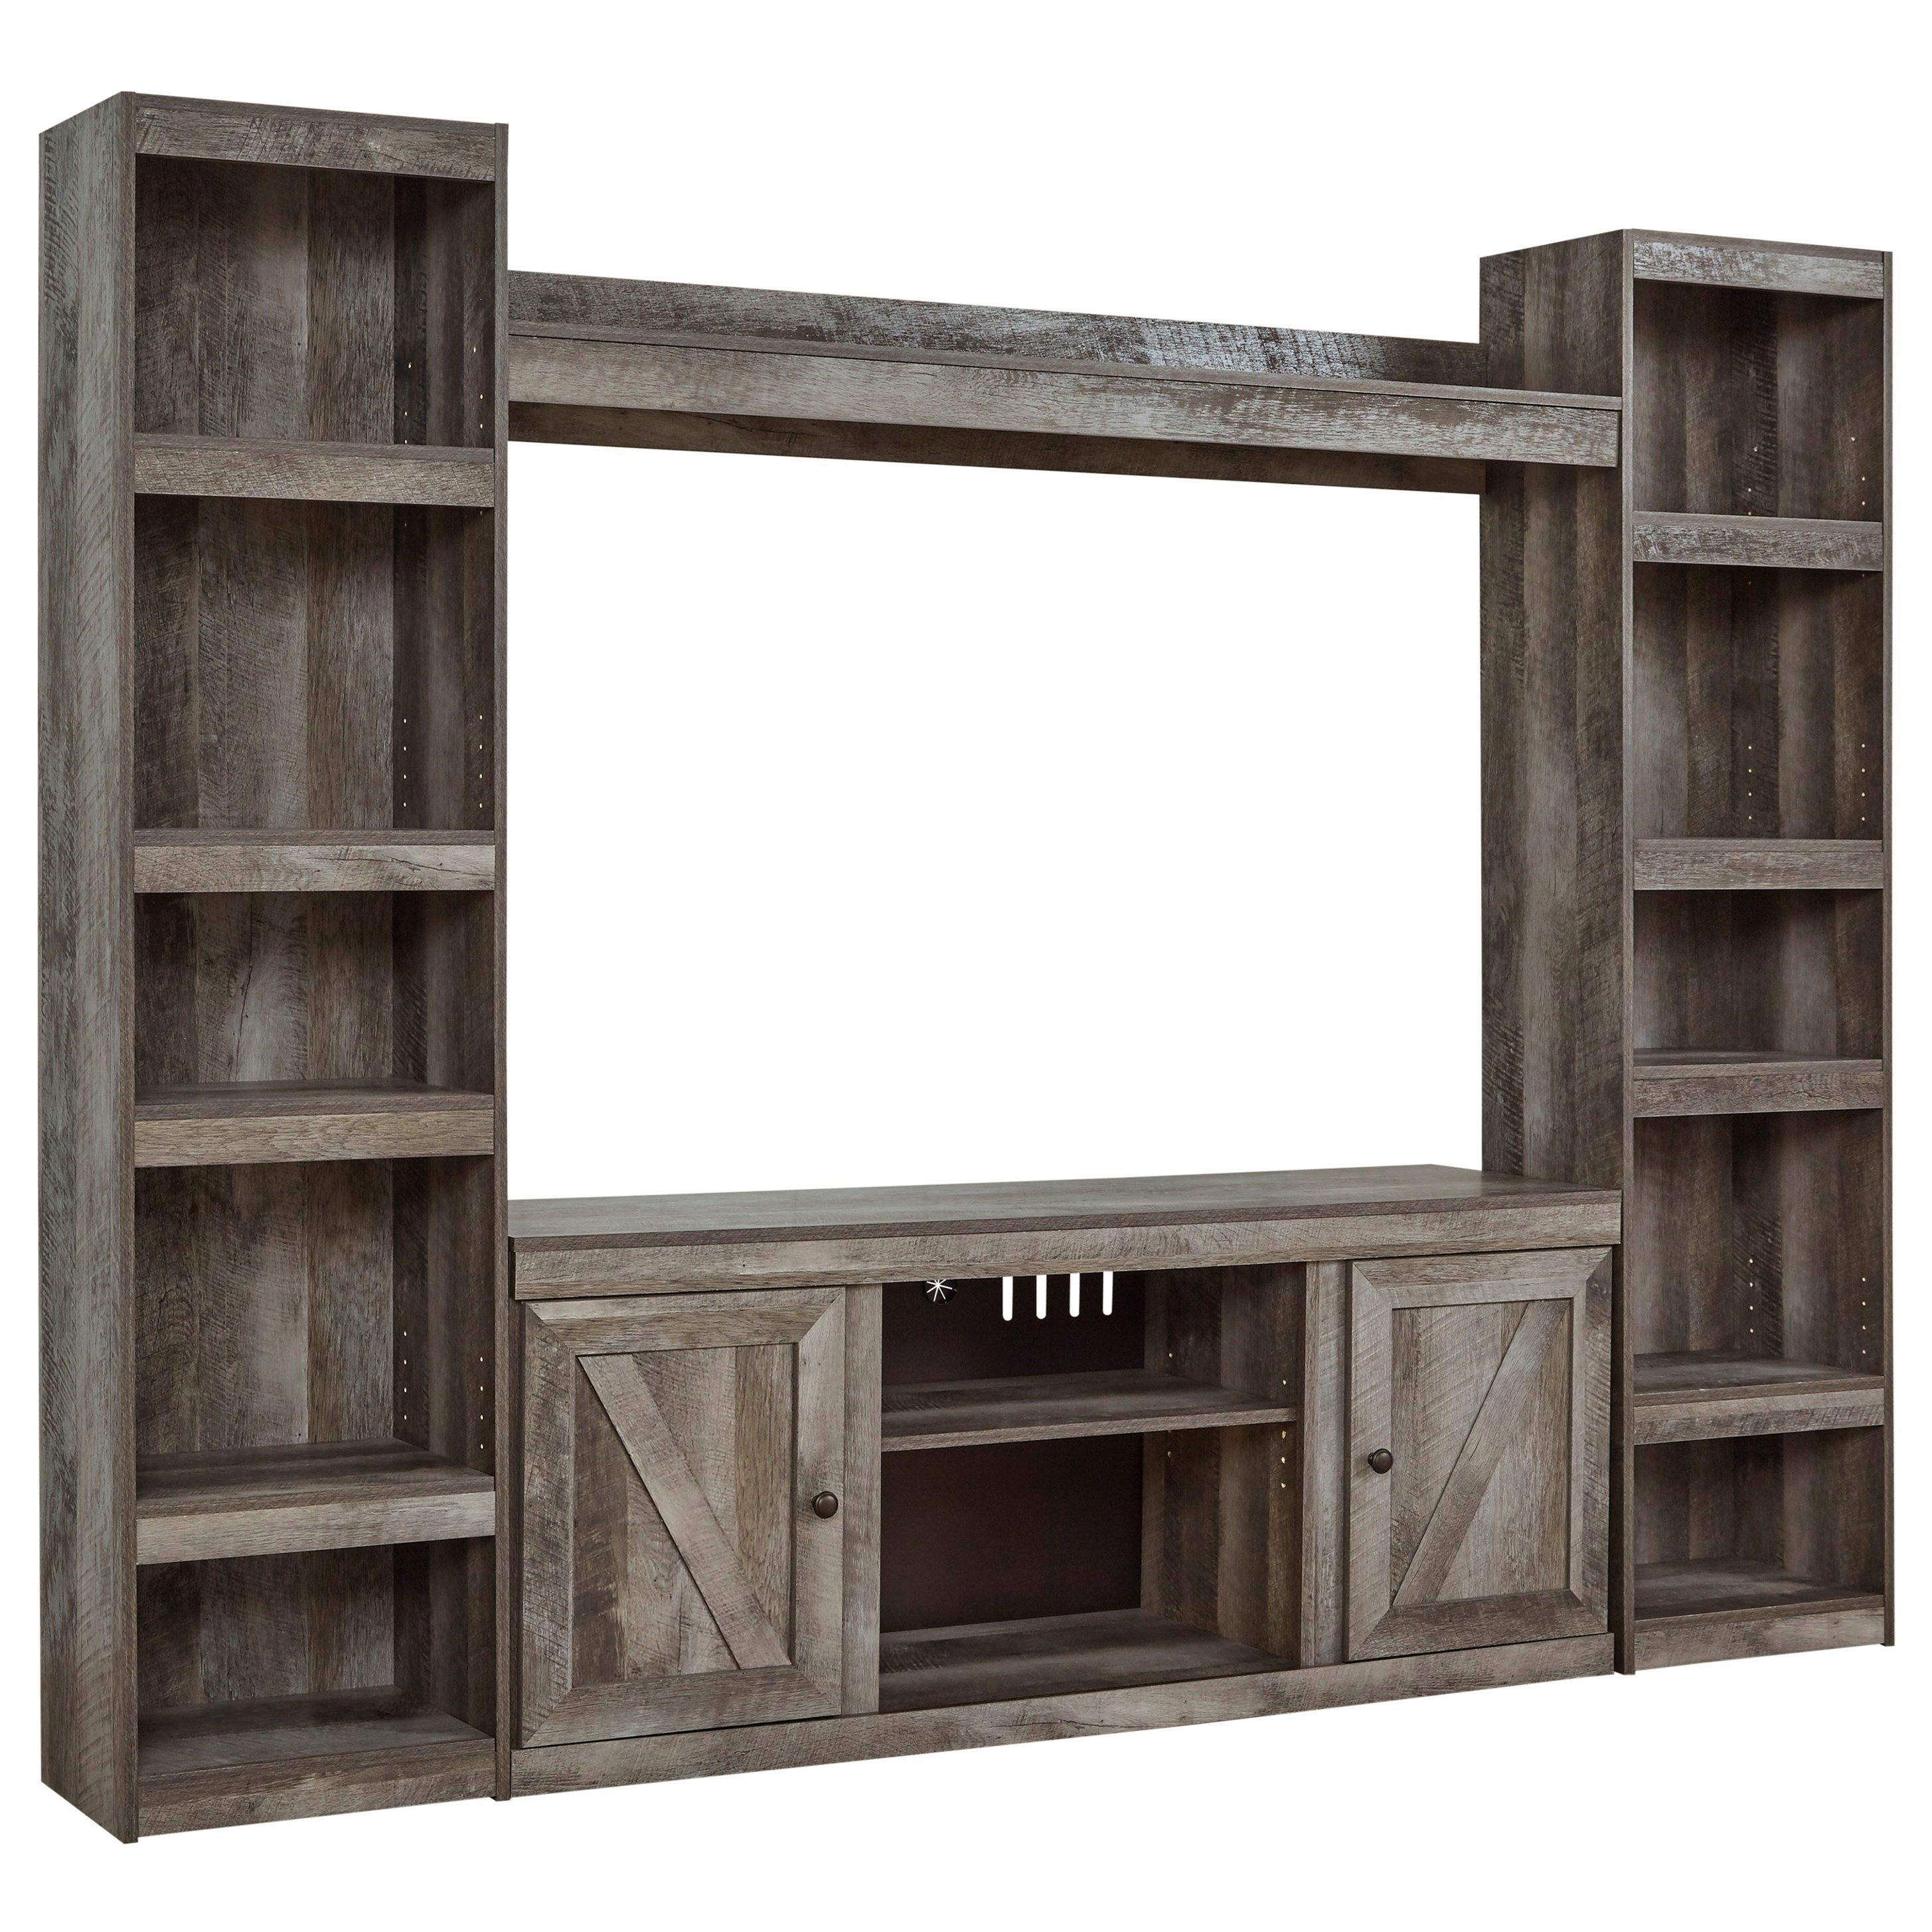 Wynnlow Large TV Stand w/ Piers and Bridge by Signature Design by Ashley at Household Furniture